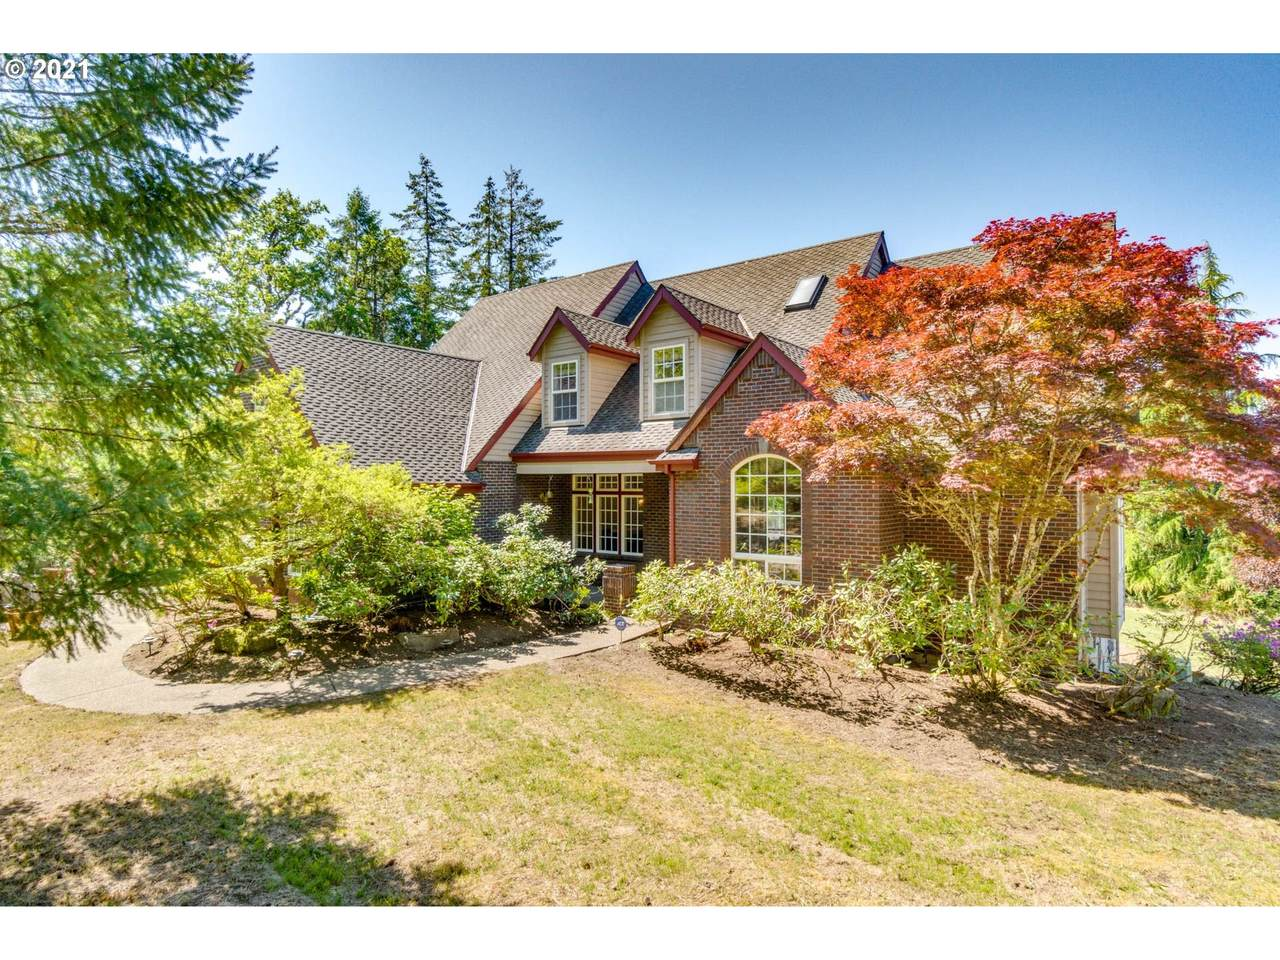 23220 Cove Orchard Rd - Photo 1